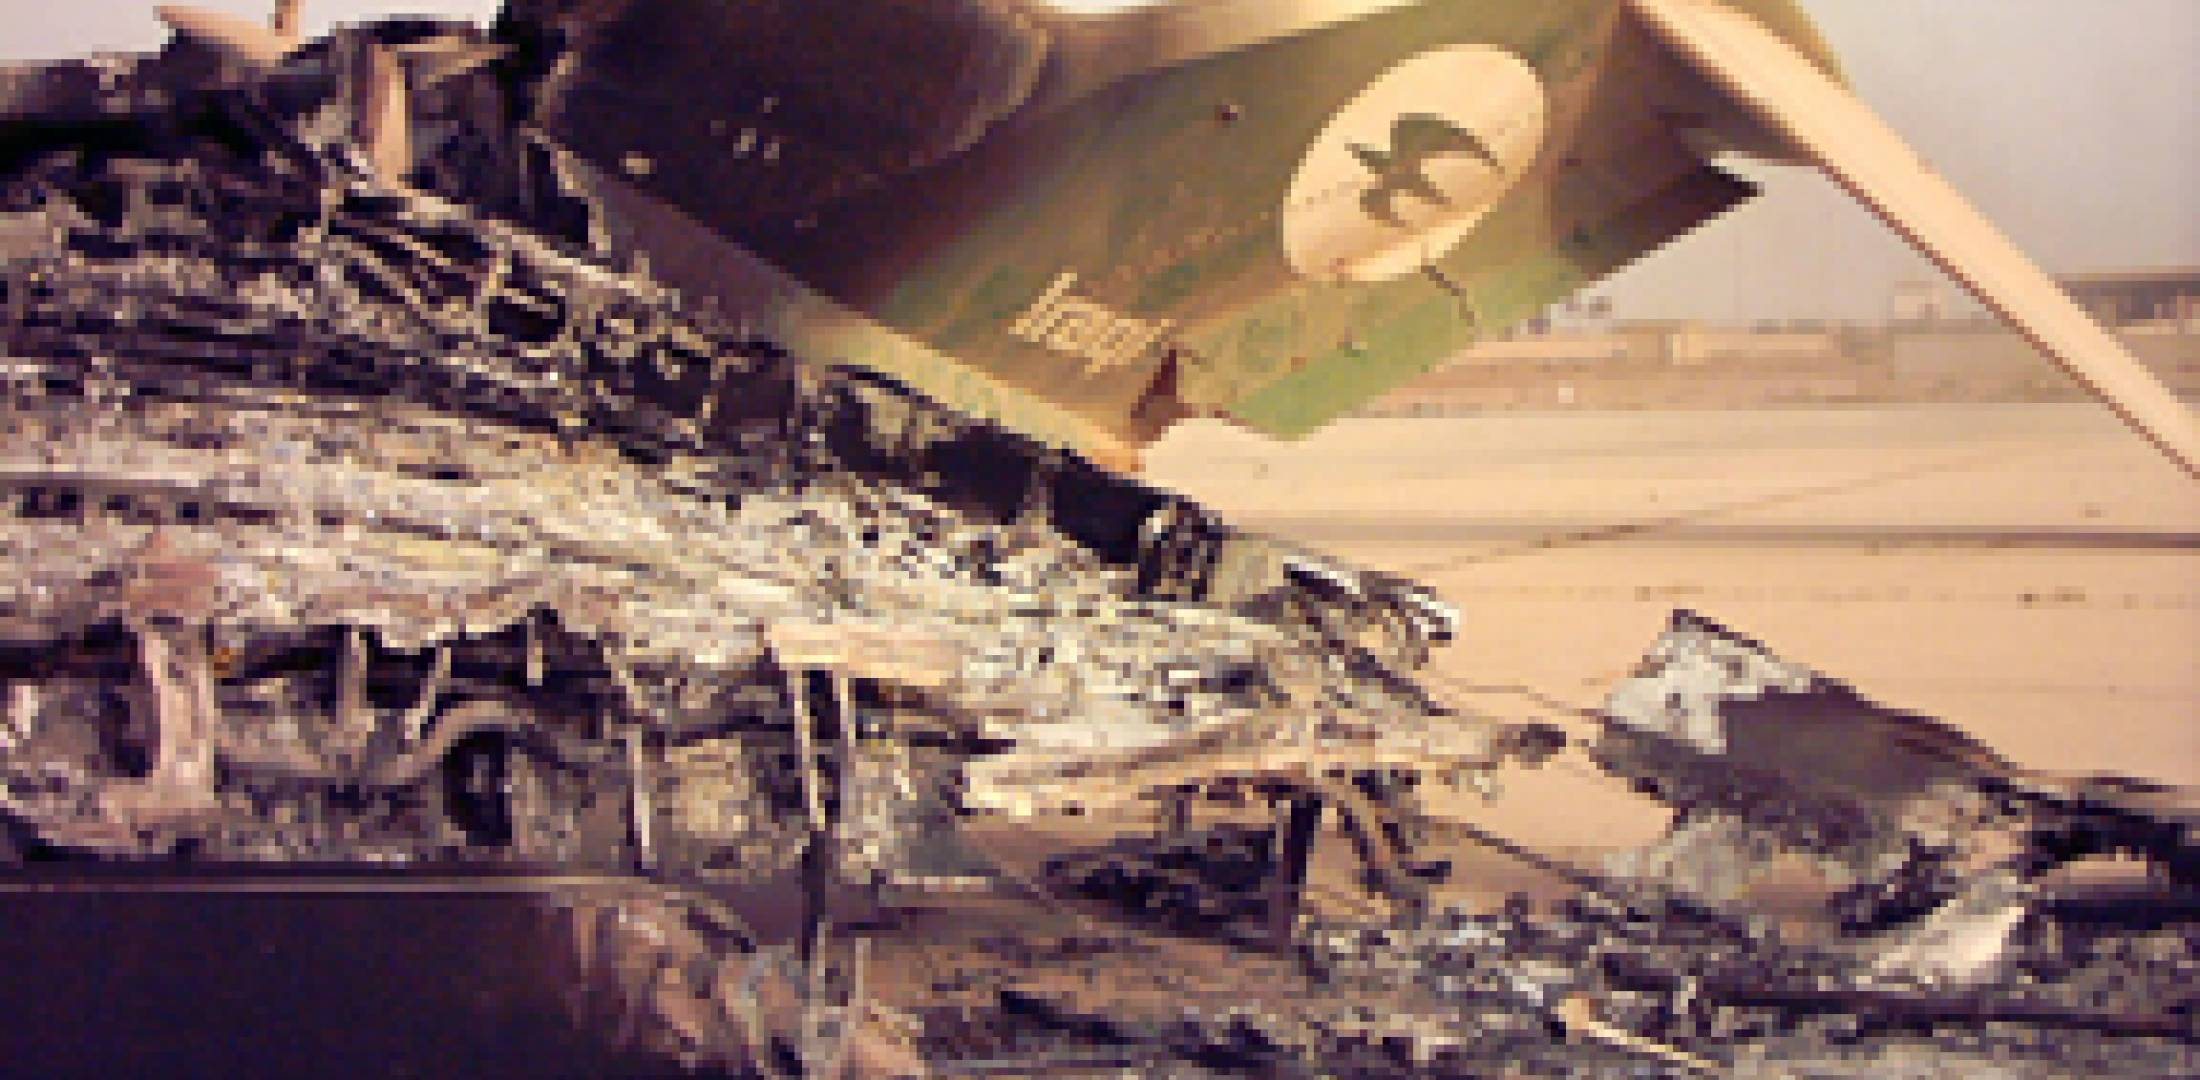 Iraqi Airways aircraft were destroyed during the second Gulf War in 2003, but...